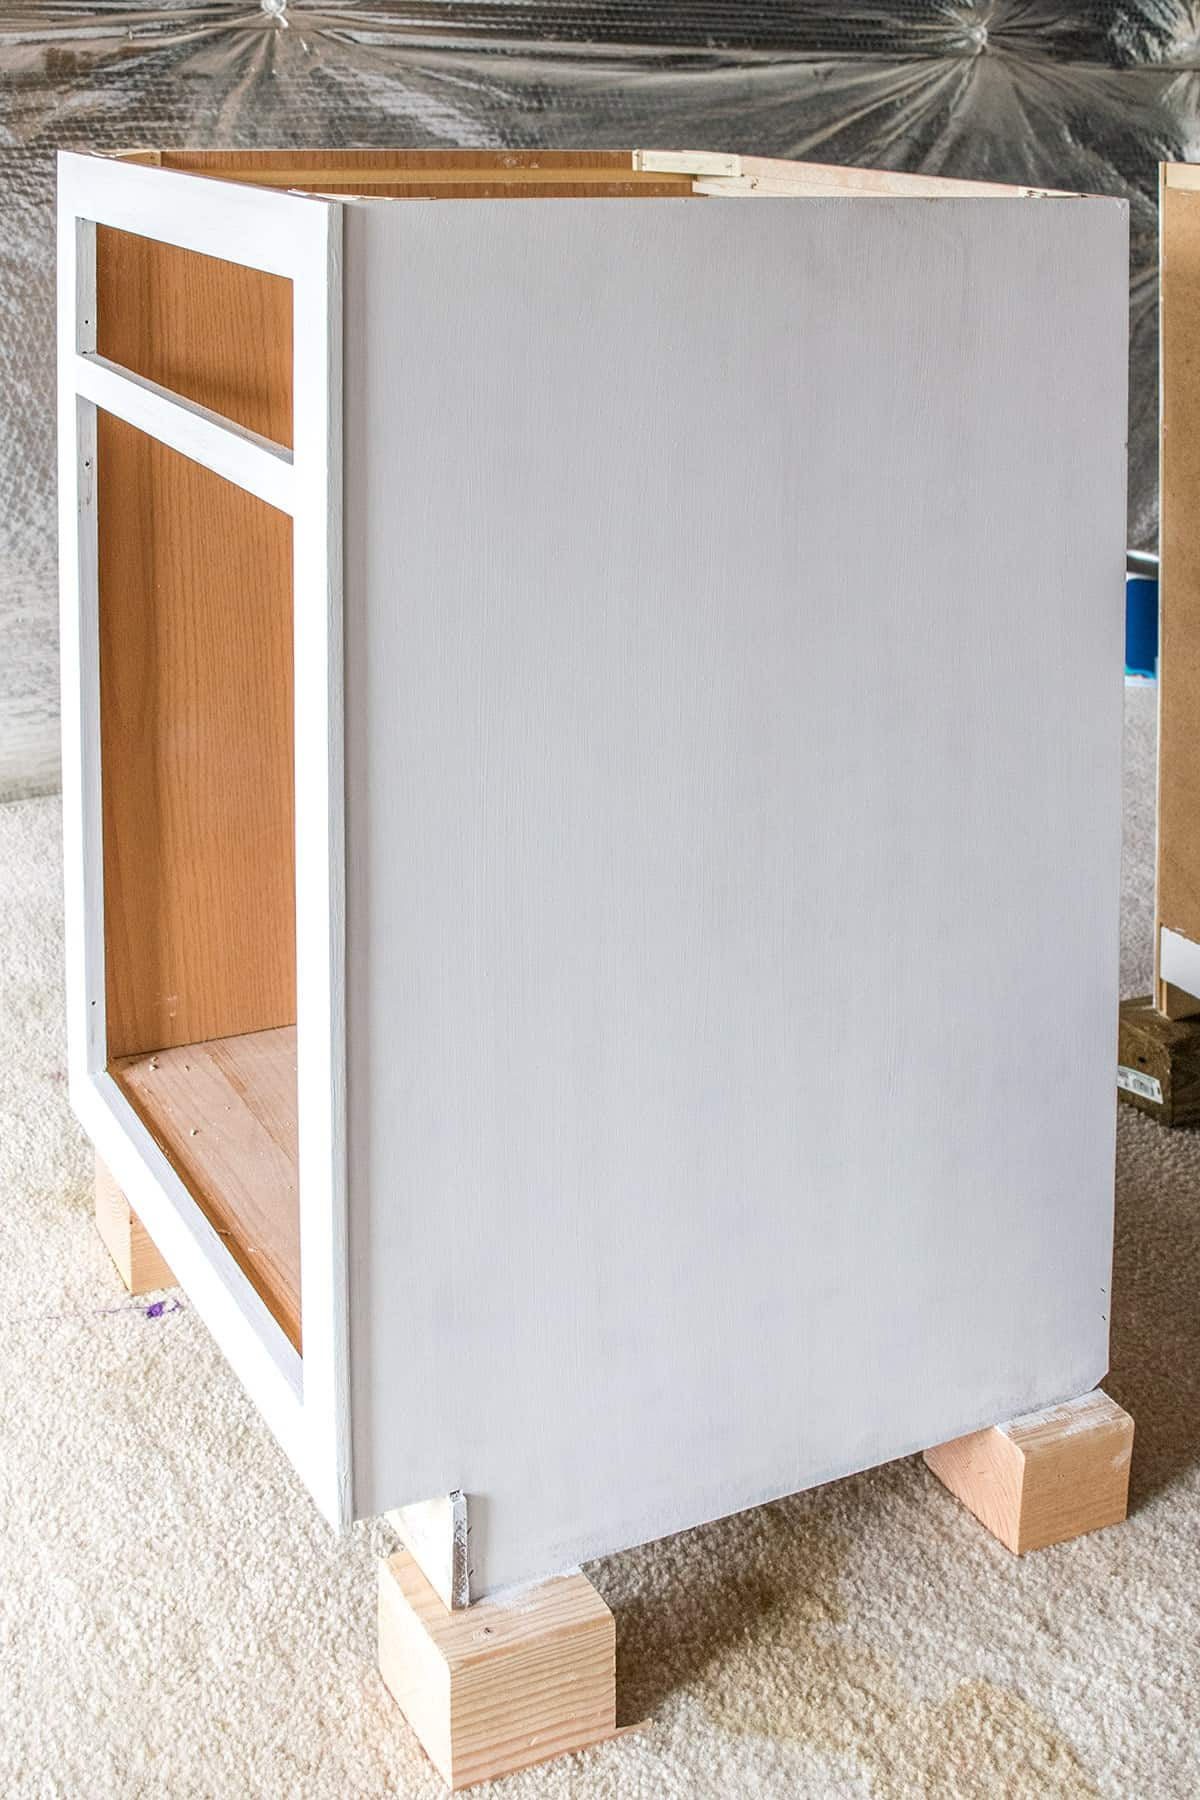 Cabinet section painted white with doors removed, resting on wooden blocks on beige carpet.